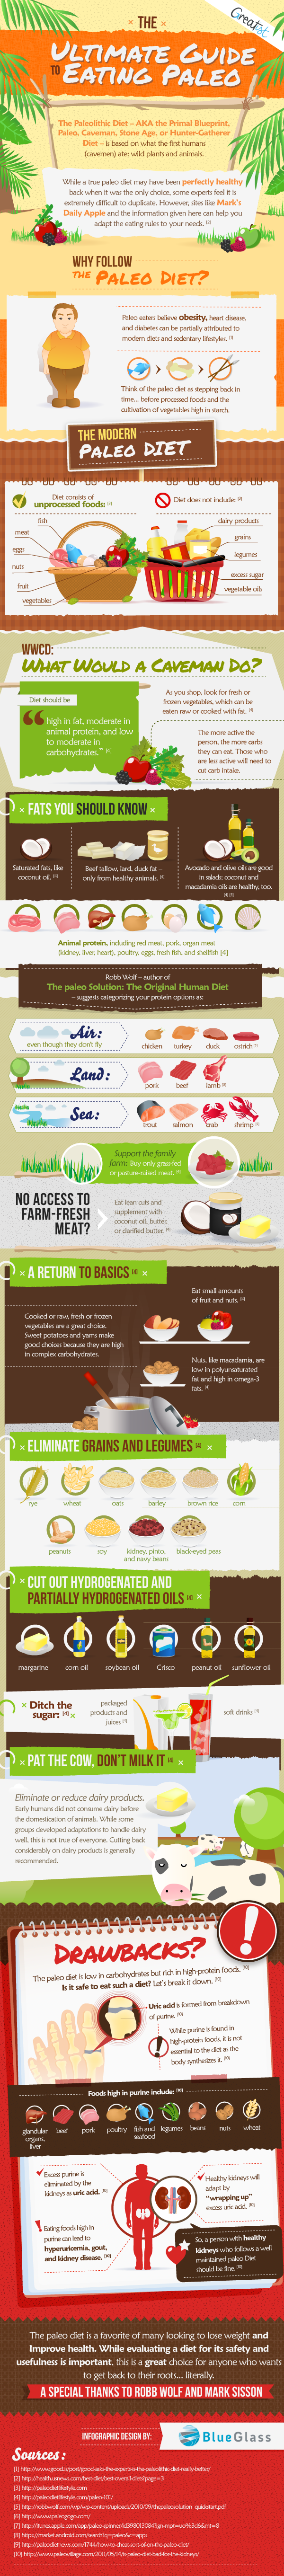 The Ultimate Guide to Eating Paleo (Infographic) - pinned by www.CavemenTimes.com